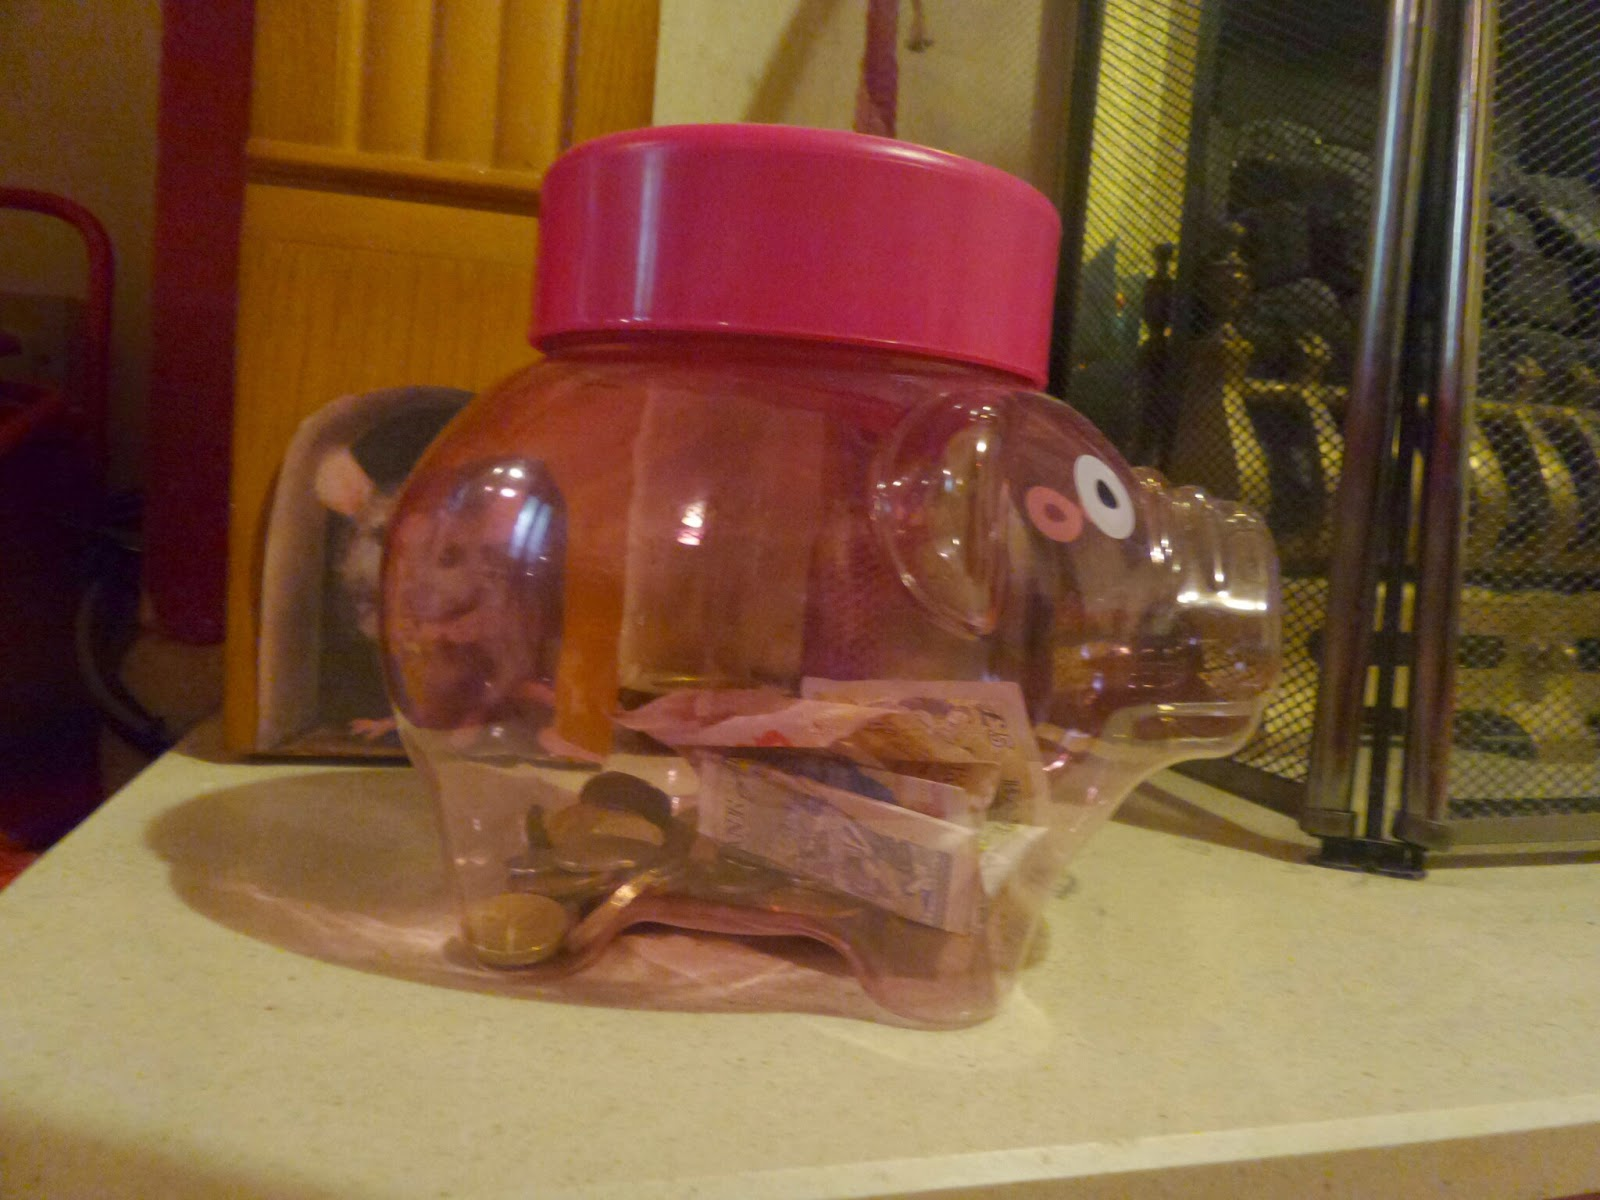 A Piggy Bank full of Money